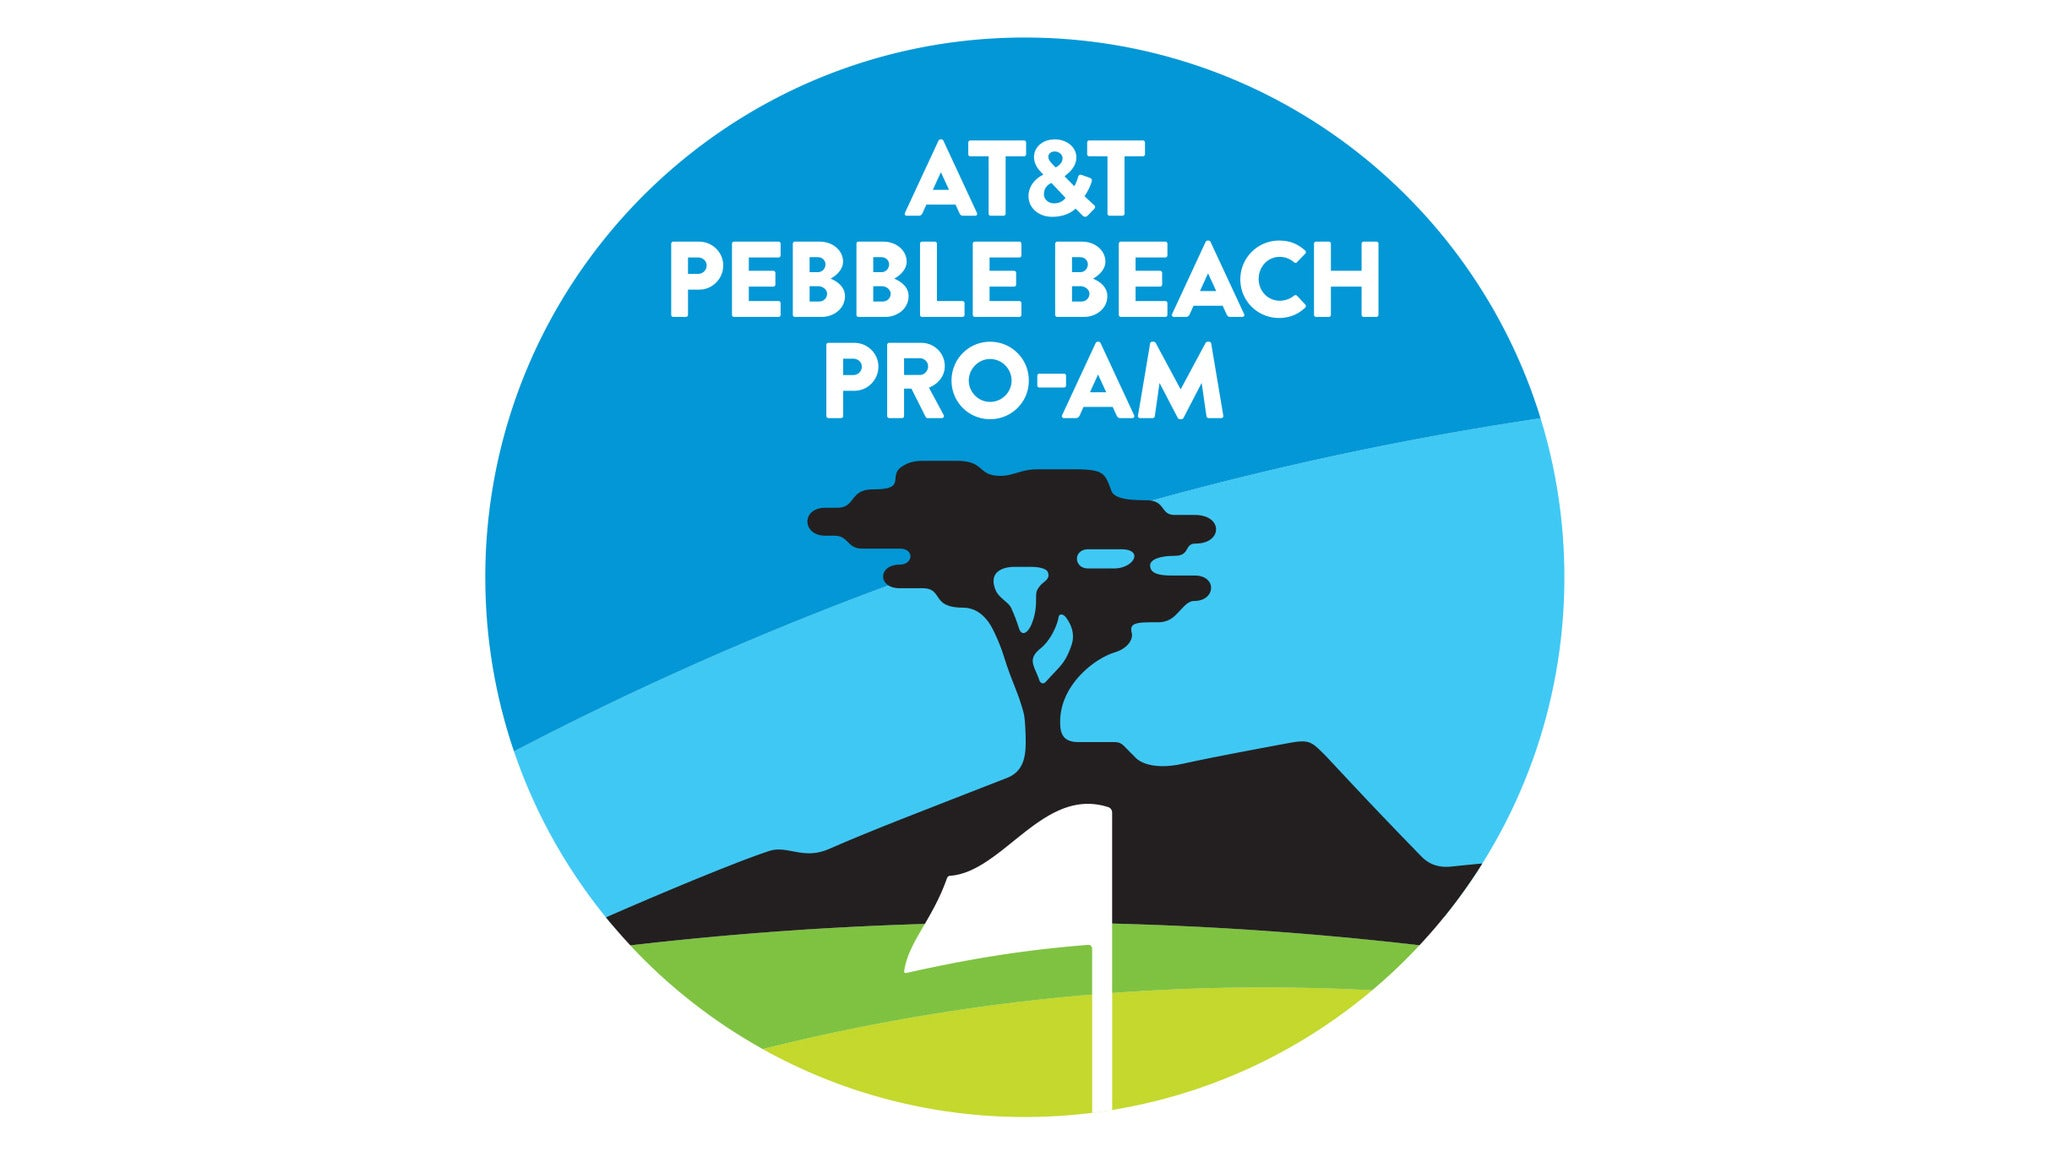 AT&T Pebble Beach National Pro-Am at Pebble Beach